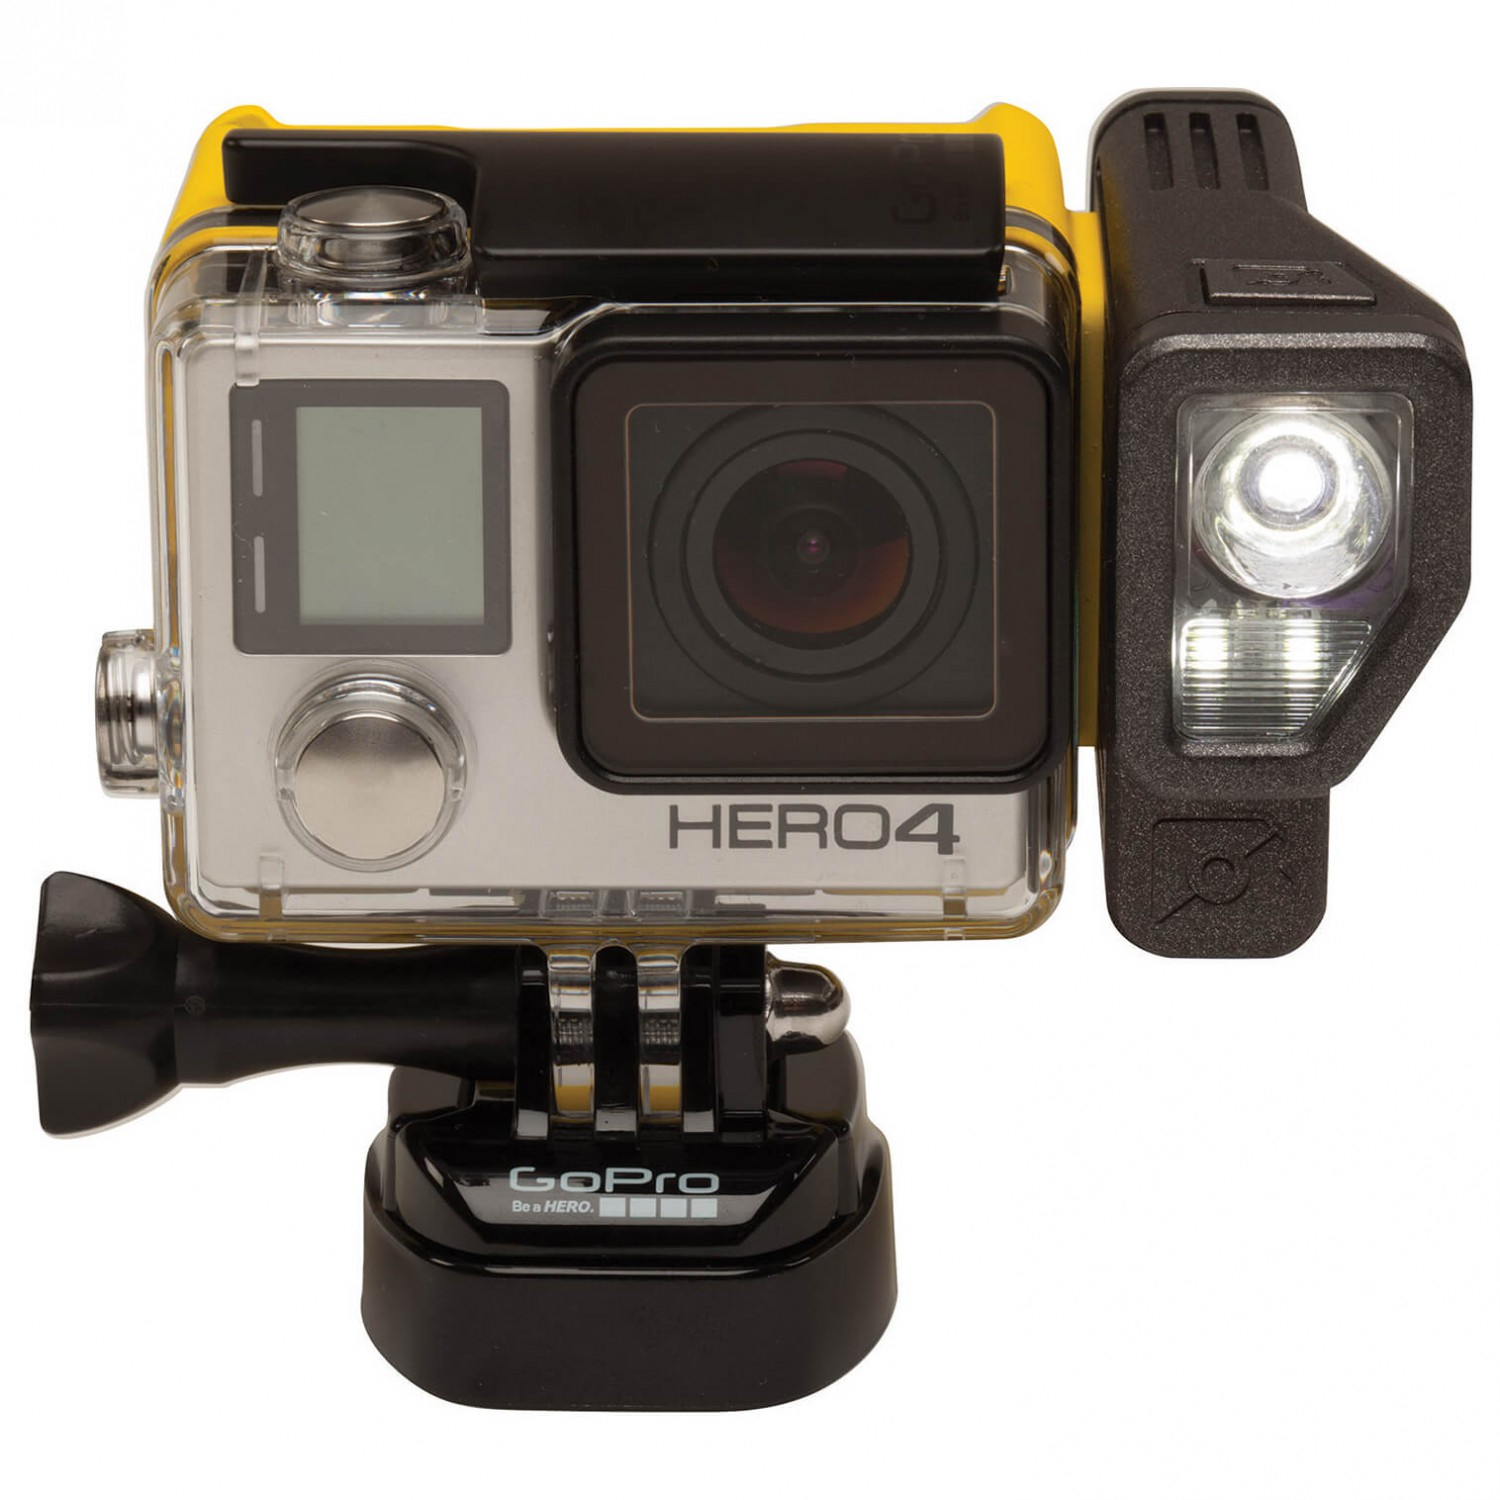 ... Brunton - All Night Extended Battery u0026 Lighting System GoPro  sc 1 st  Alpinetrek & Brunton All Night Extended Battery u0026 Lighting System GoPro | Buy ... azcodes.com